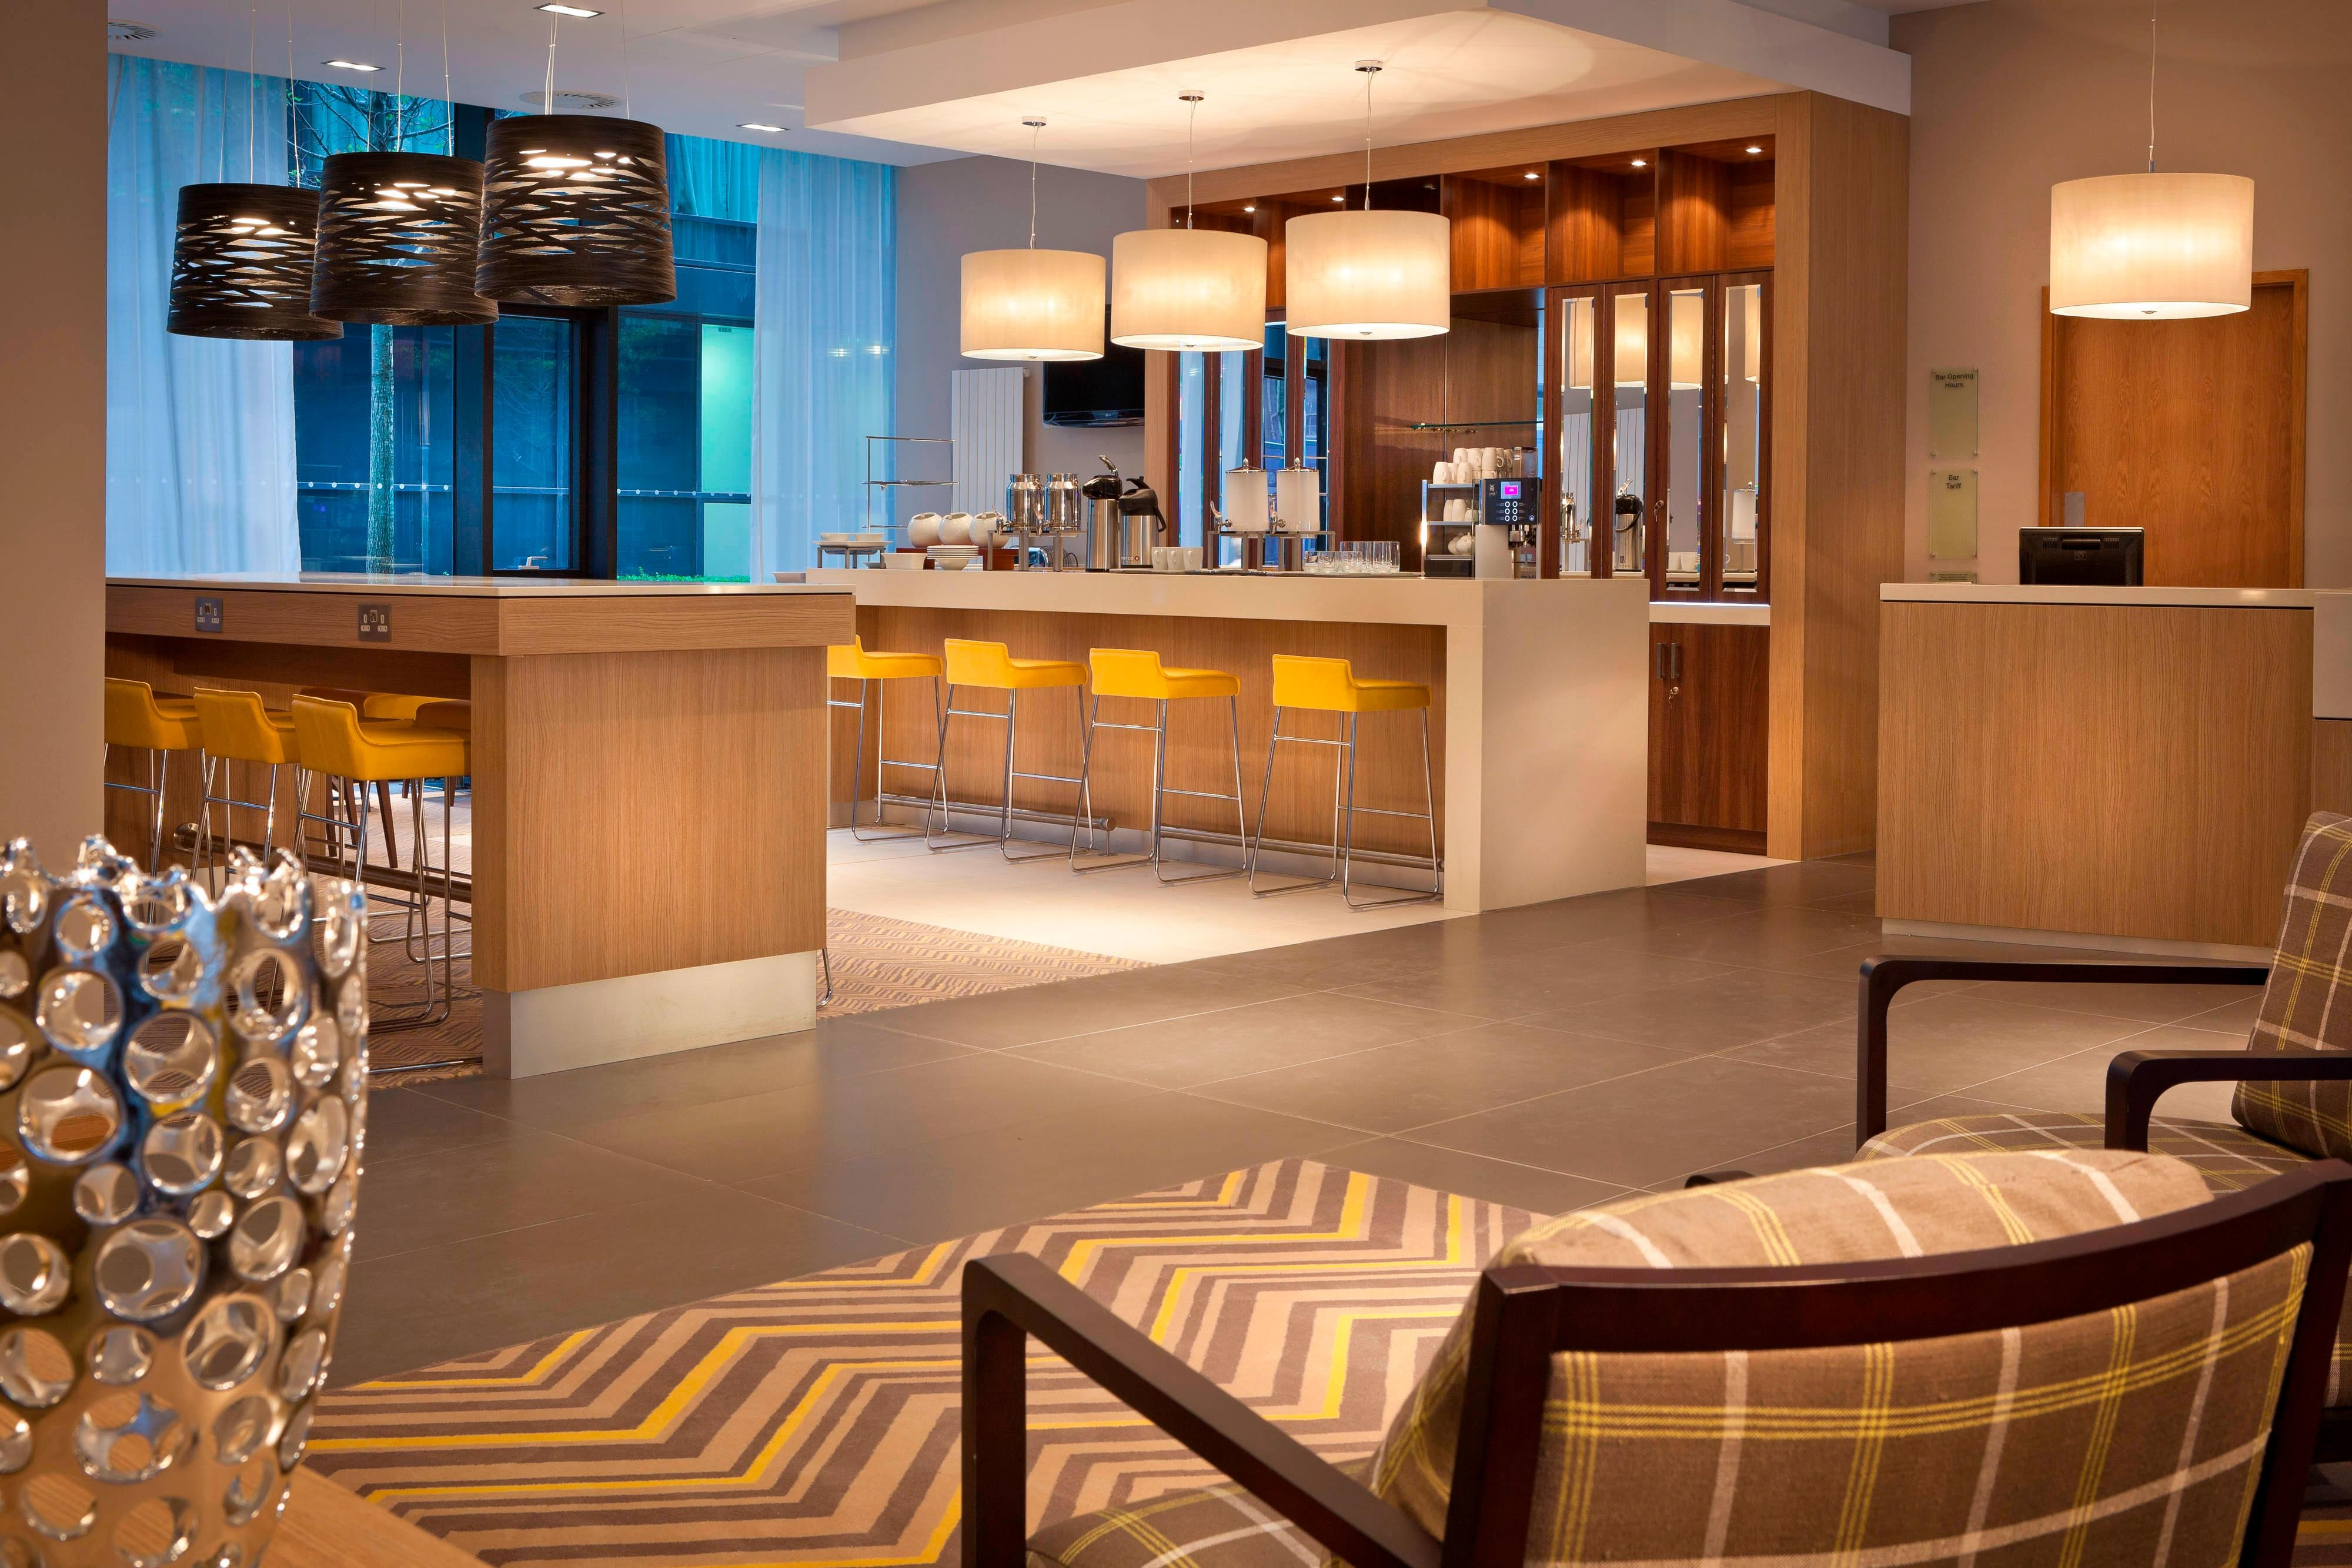 Residence Inn Restaurant and Bar